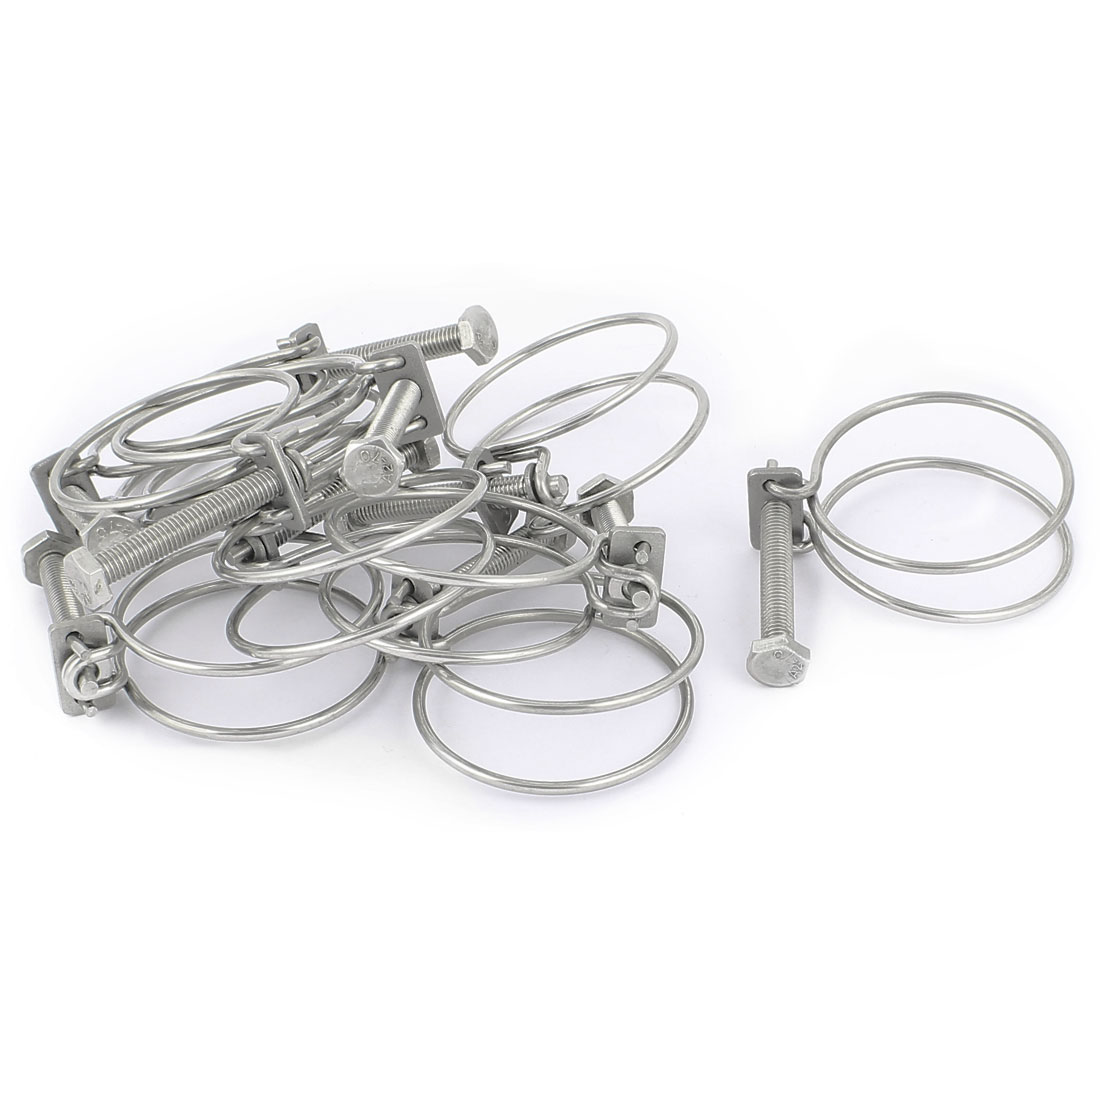 10 Pcs 57mm Diameter Double Wire Grip Cable Tight Pond Pump Hose Pipe Clip Bolt Clamp